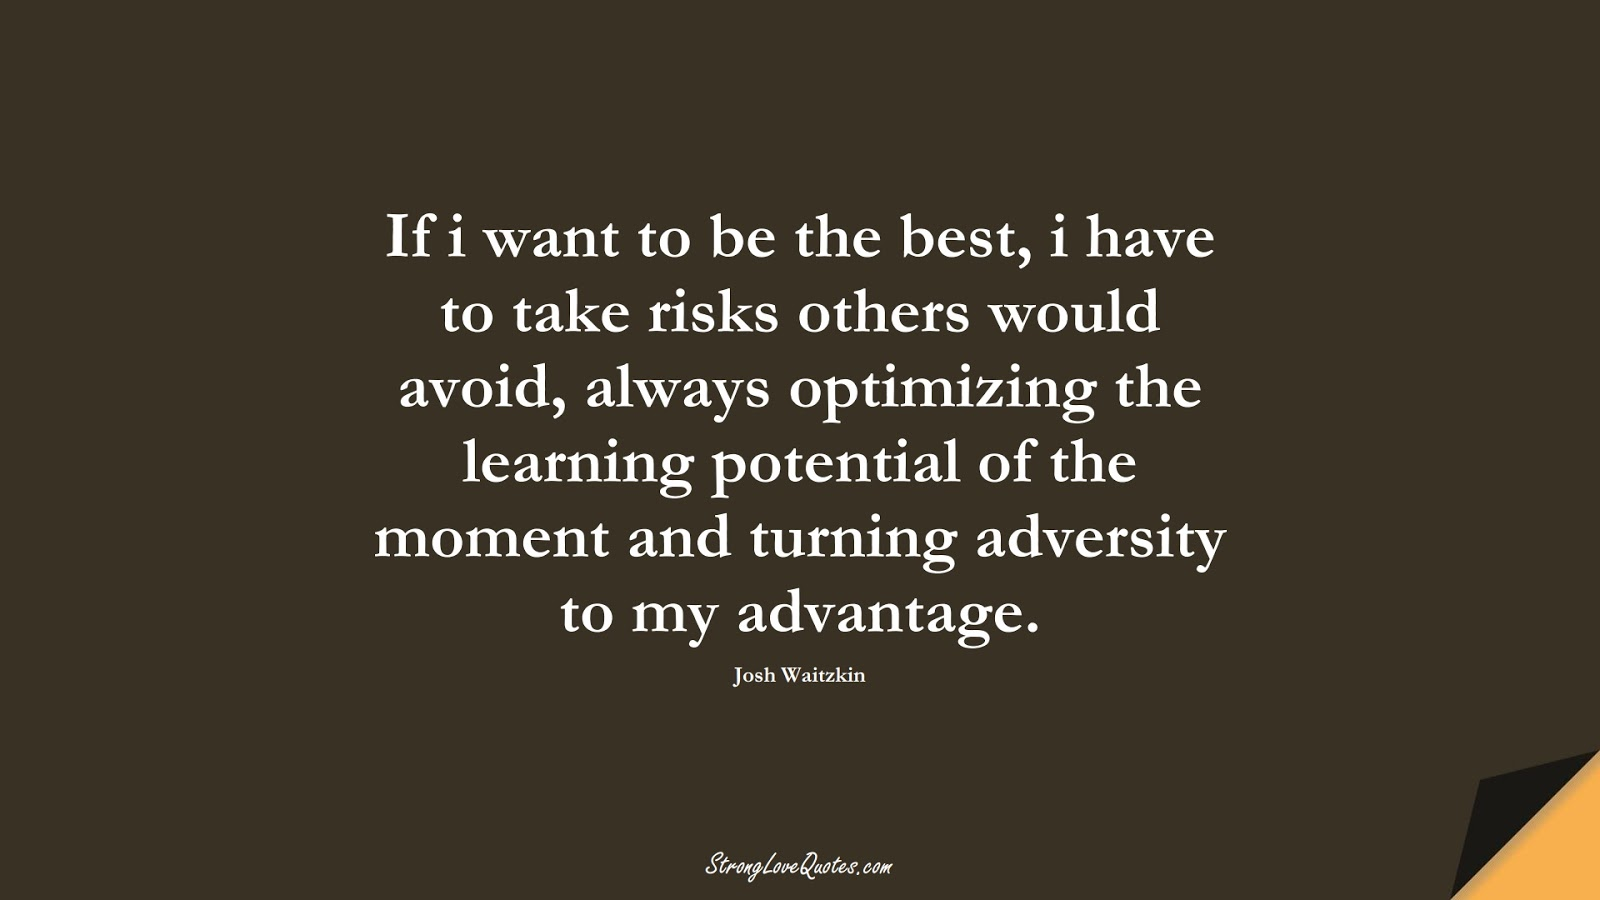 If i want to be the best, i have to take risks others would avoid, always optimizing the learning potential of the moment and turning adversity to my advantage. (Josh Waitzkin);  #LearningQuotes